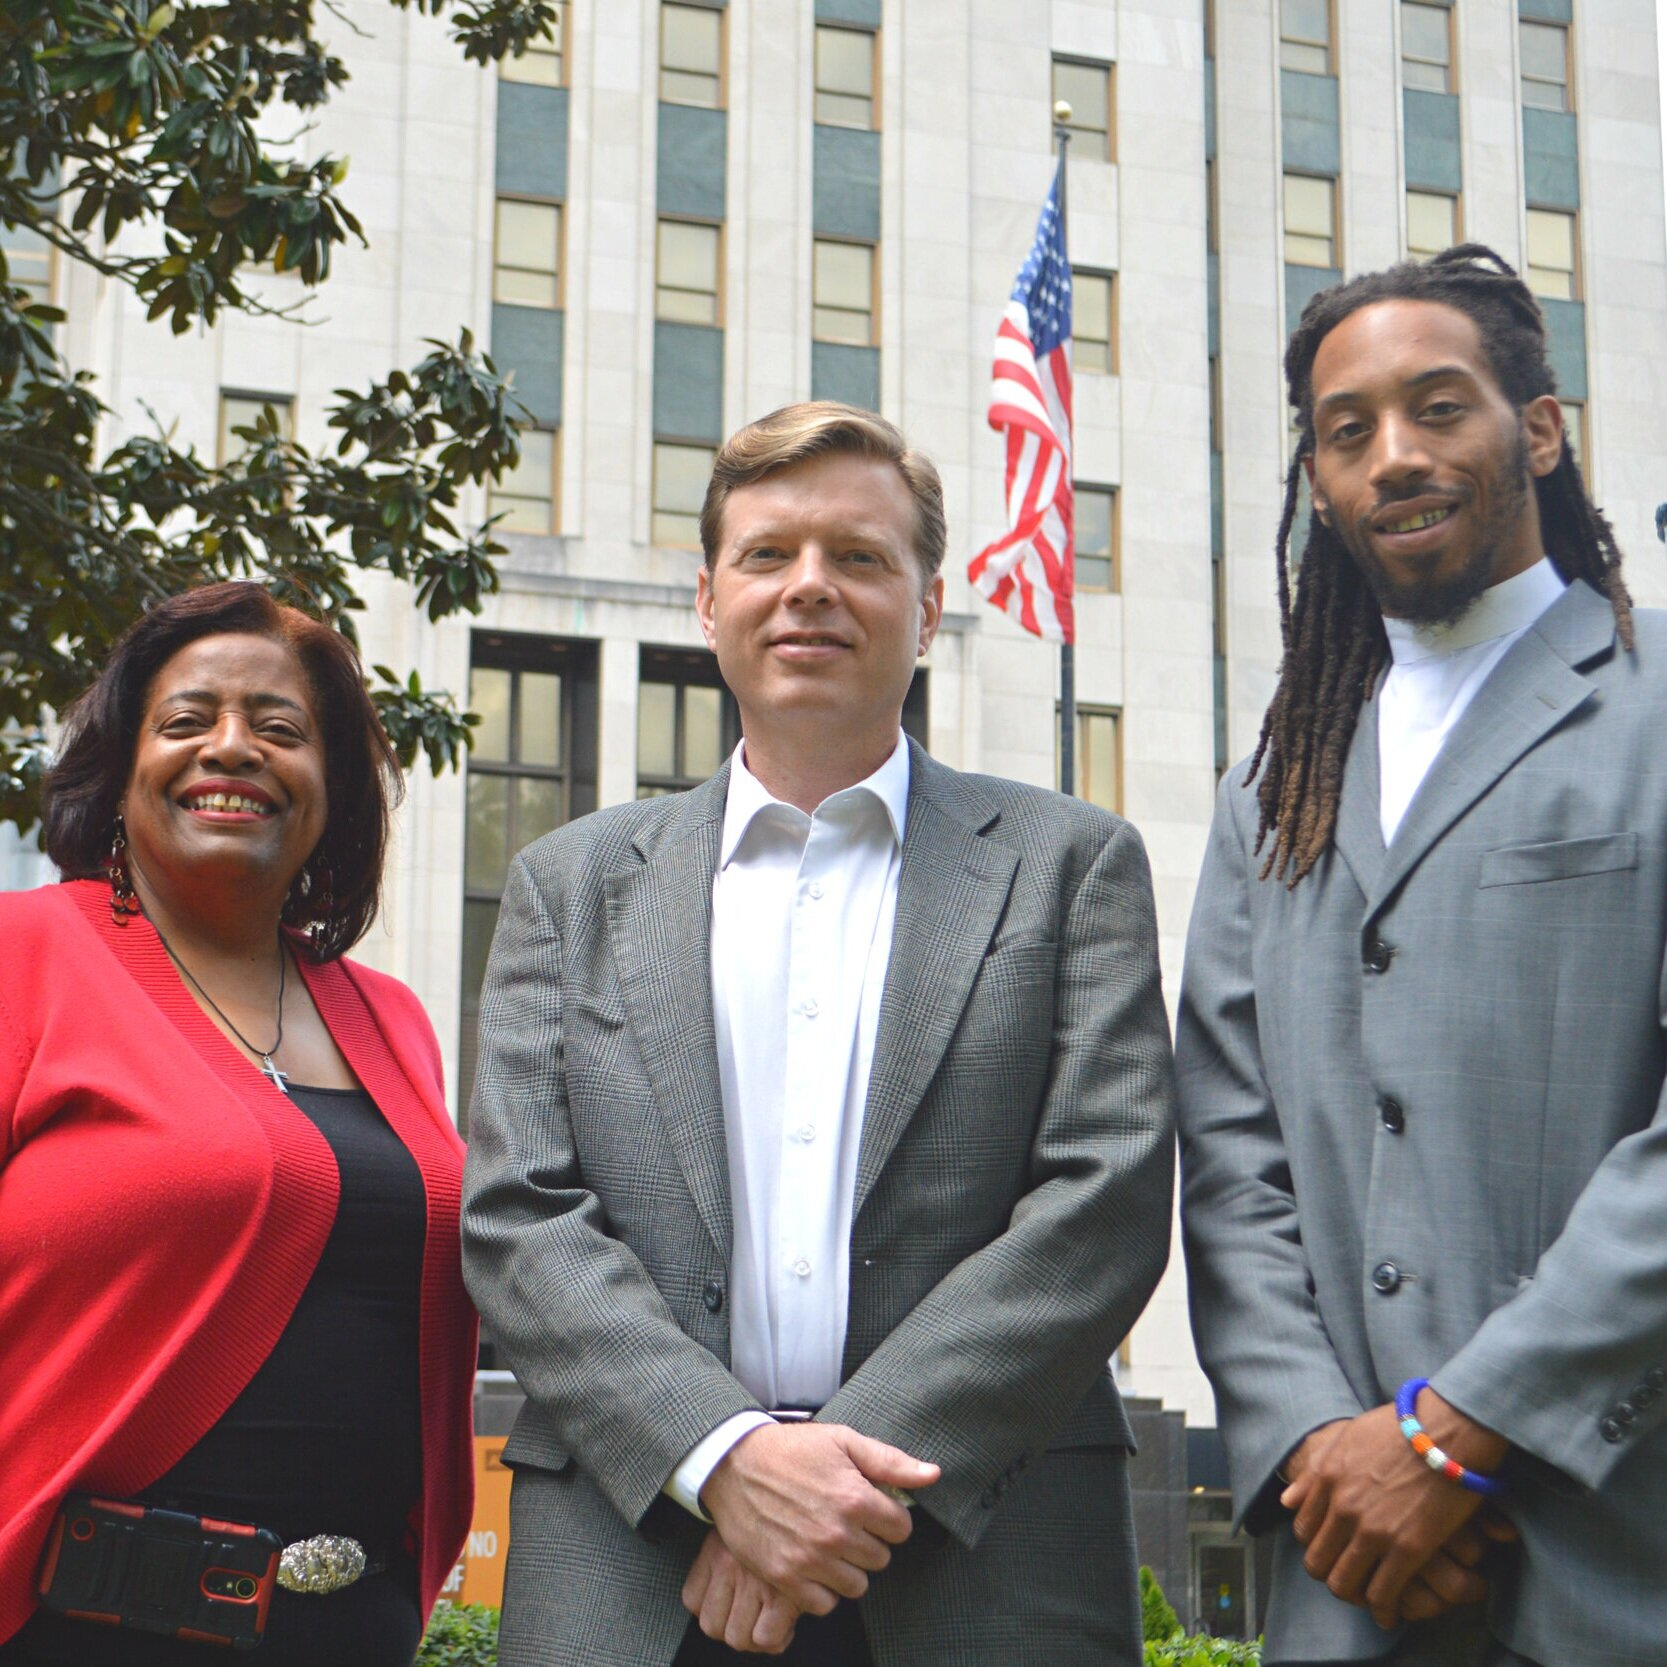 Birmingham District 5 Team—Join the Symphony of Service